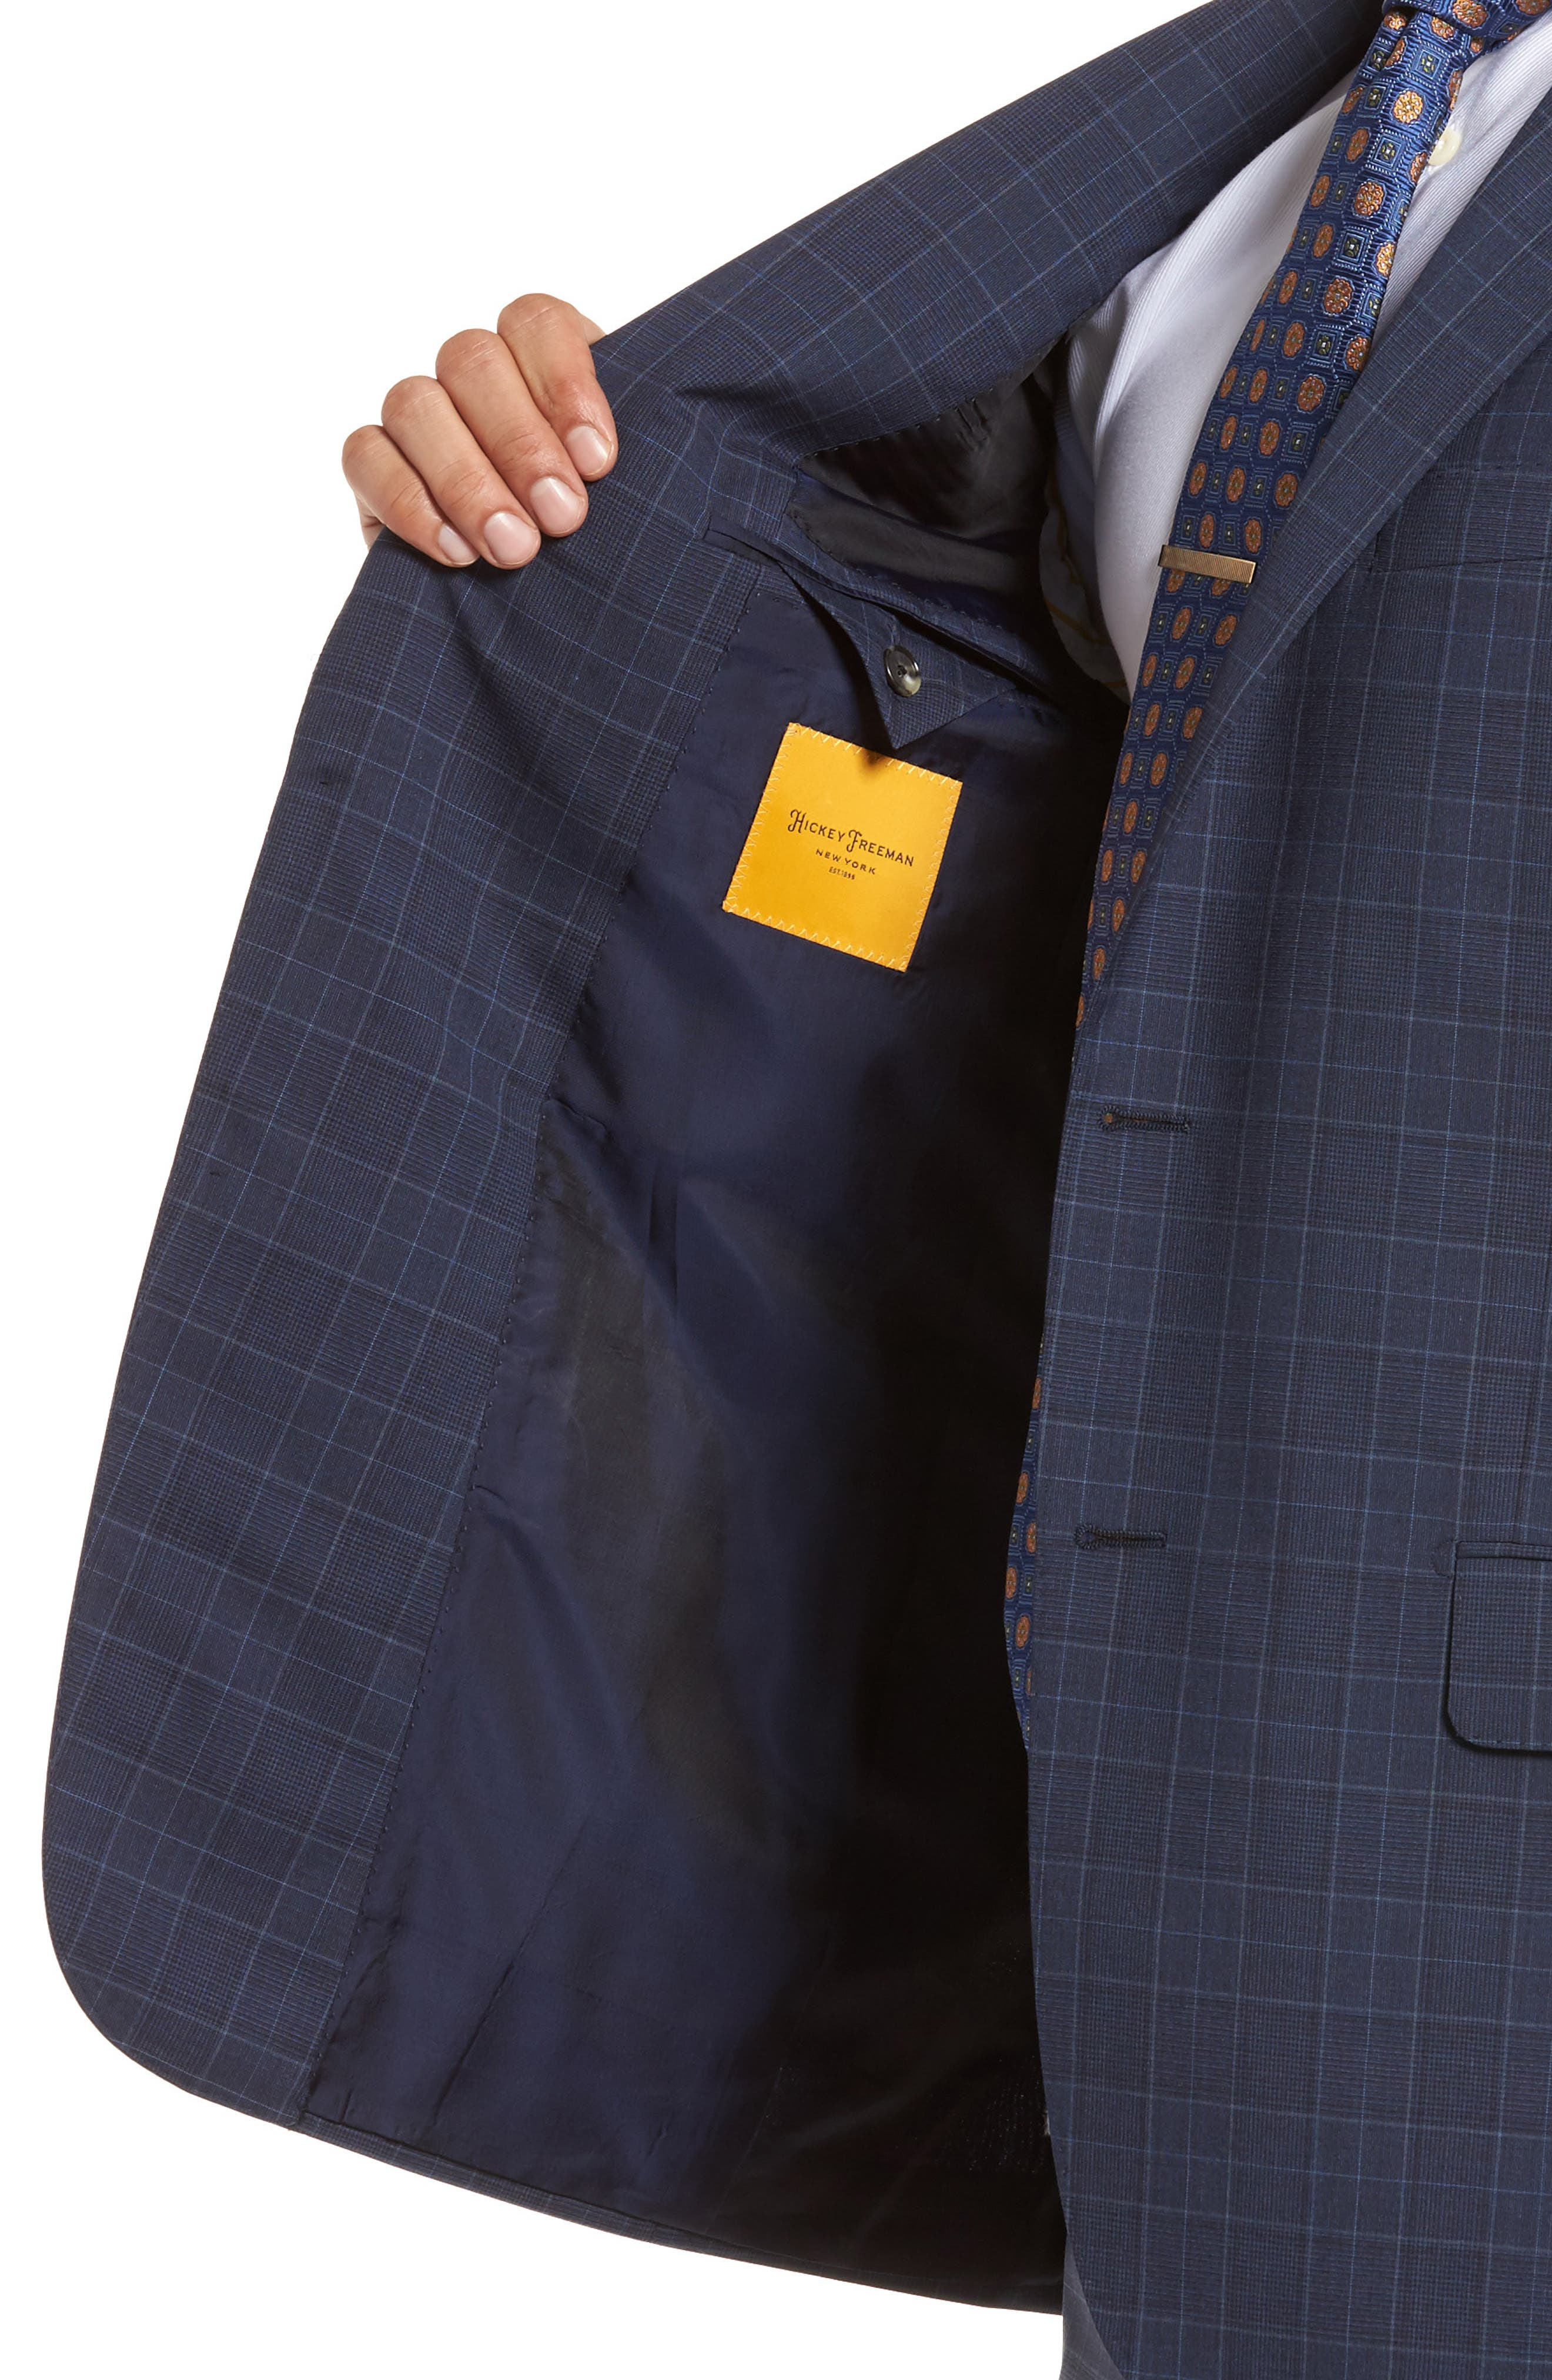 HICKEY FREEMAN,                             Classic B Fit Plaid Wool Suit,                             Alternate thumbnail 4, color,                             400